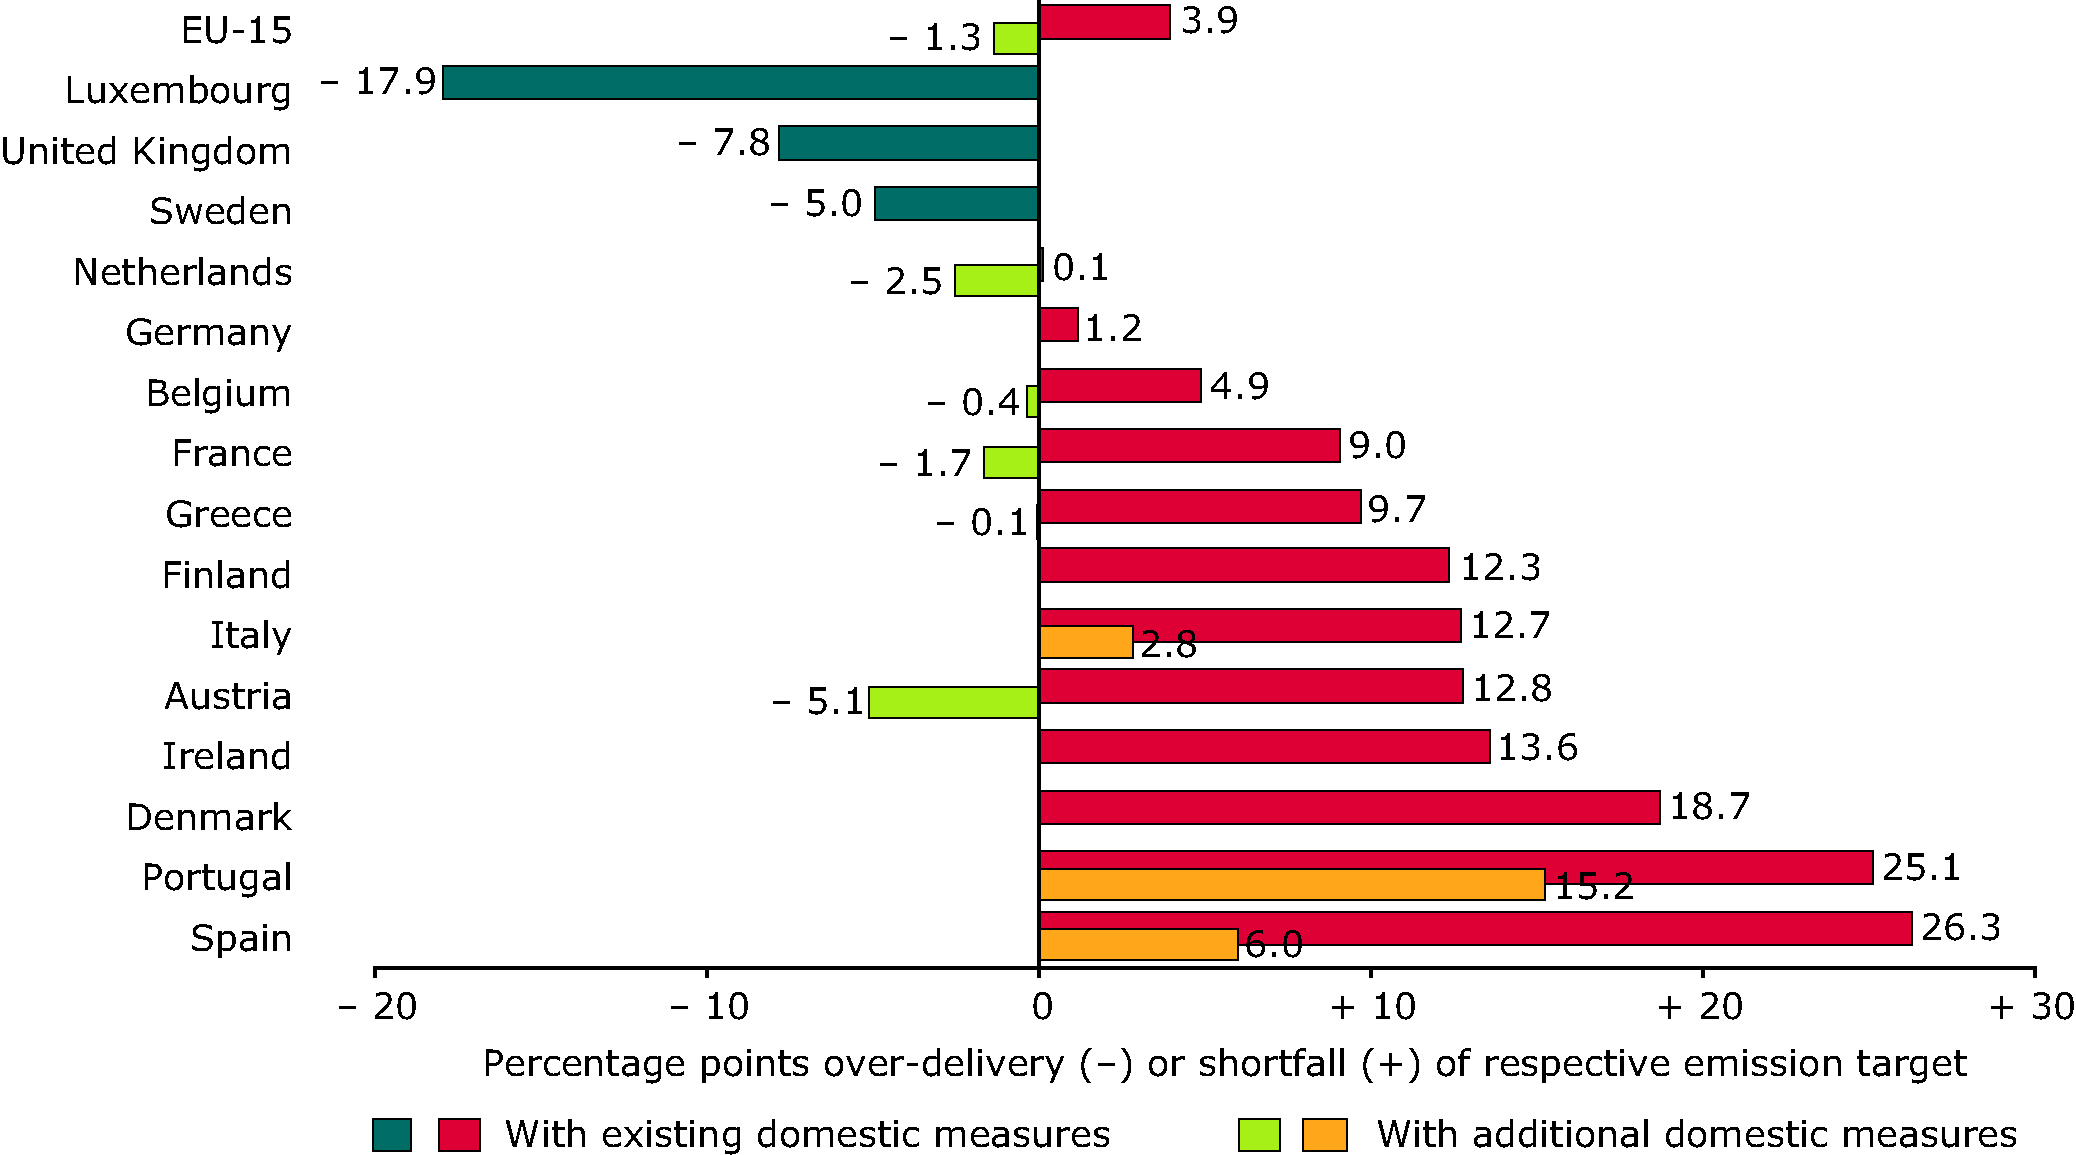 Relative gaps between GHG projections and 2010 targets, based on existing and additional domestic policies and measures, and changes by the use of Kyoto mechanisms